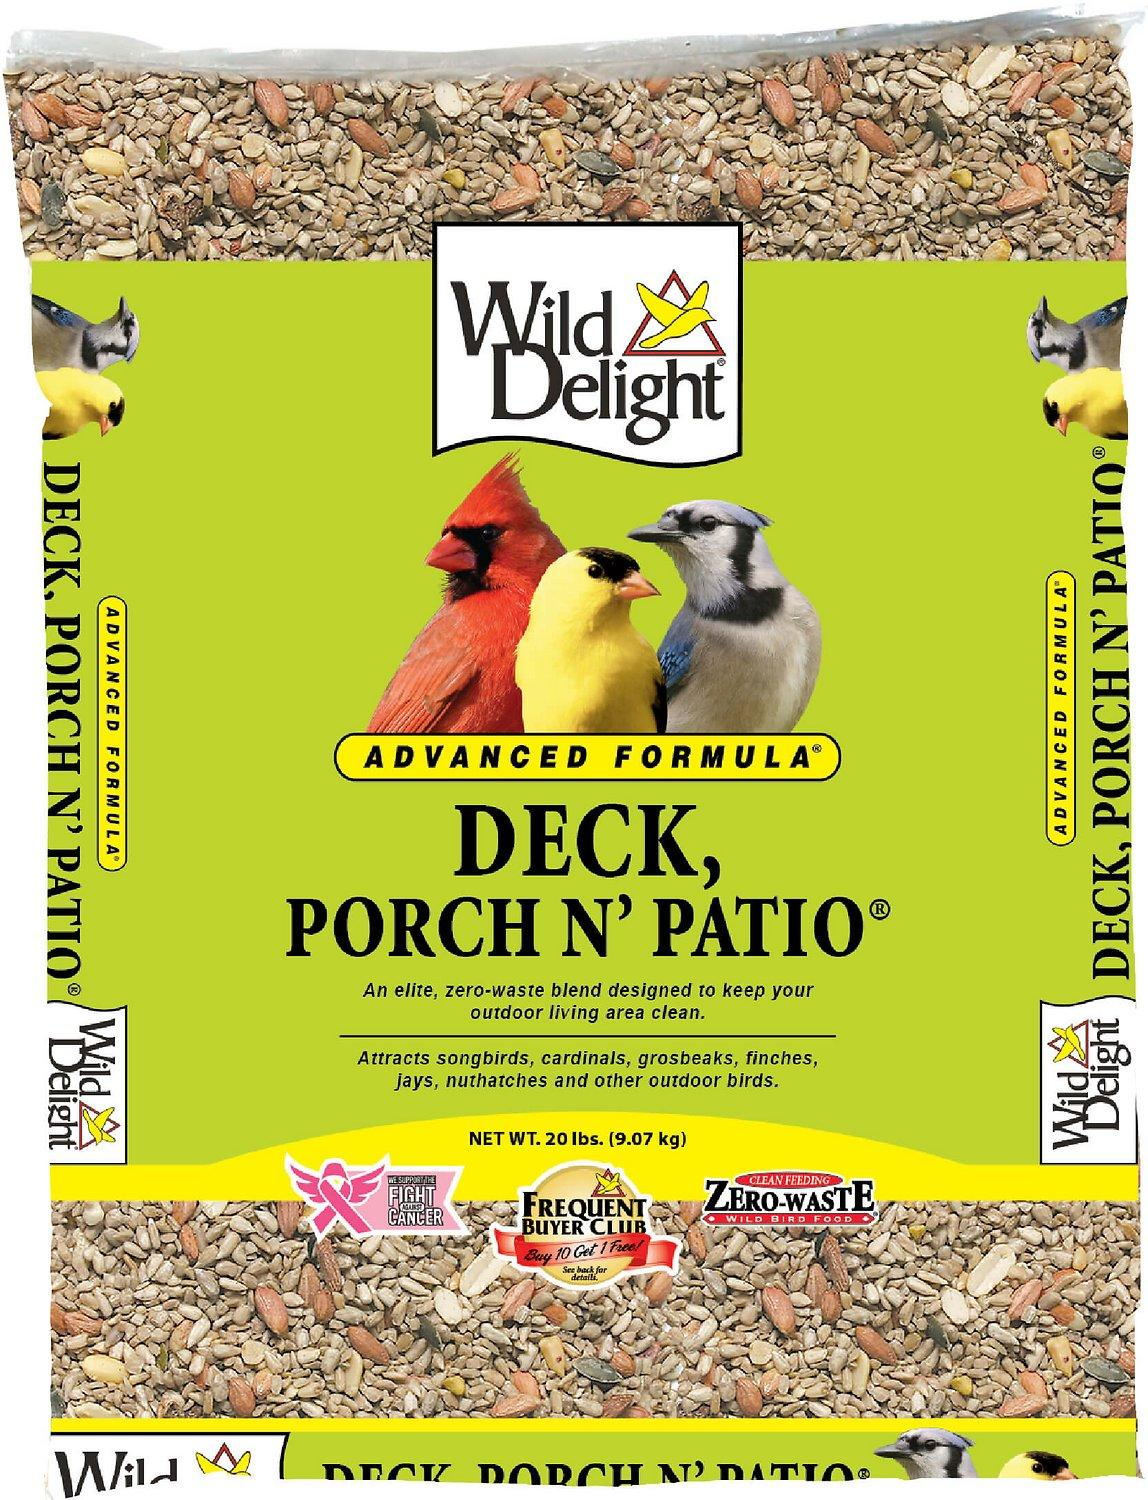 Wild Delight Advanced Formula Deck, Porch N' Patio Wild Bird Food, 20-lb